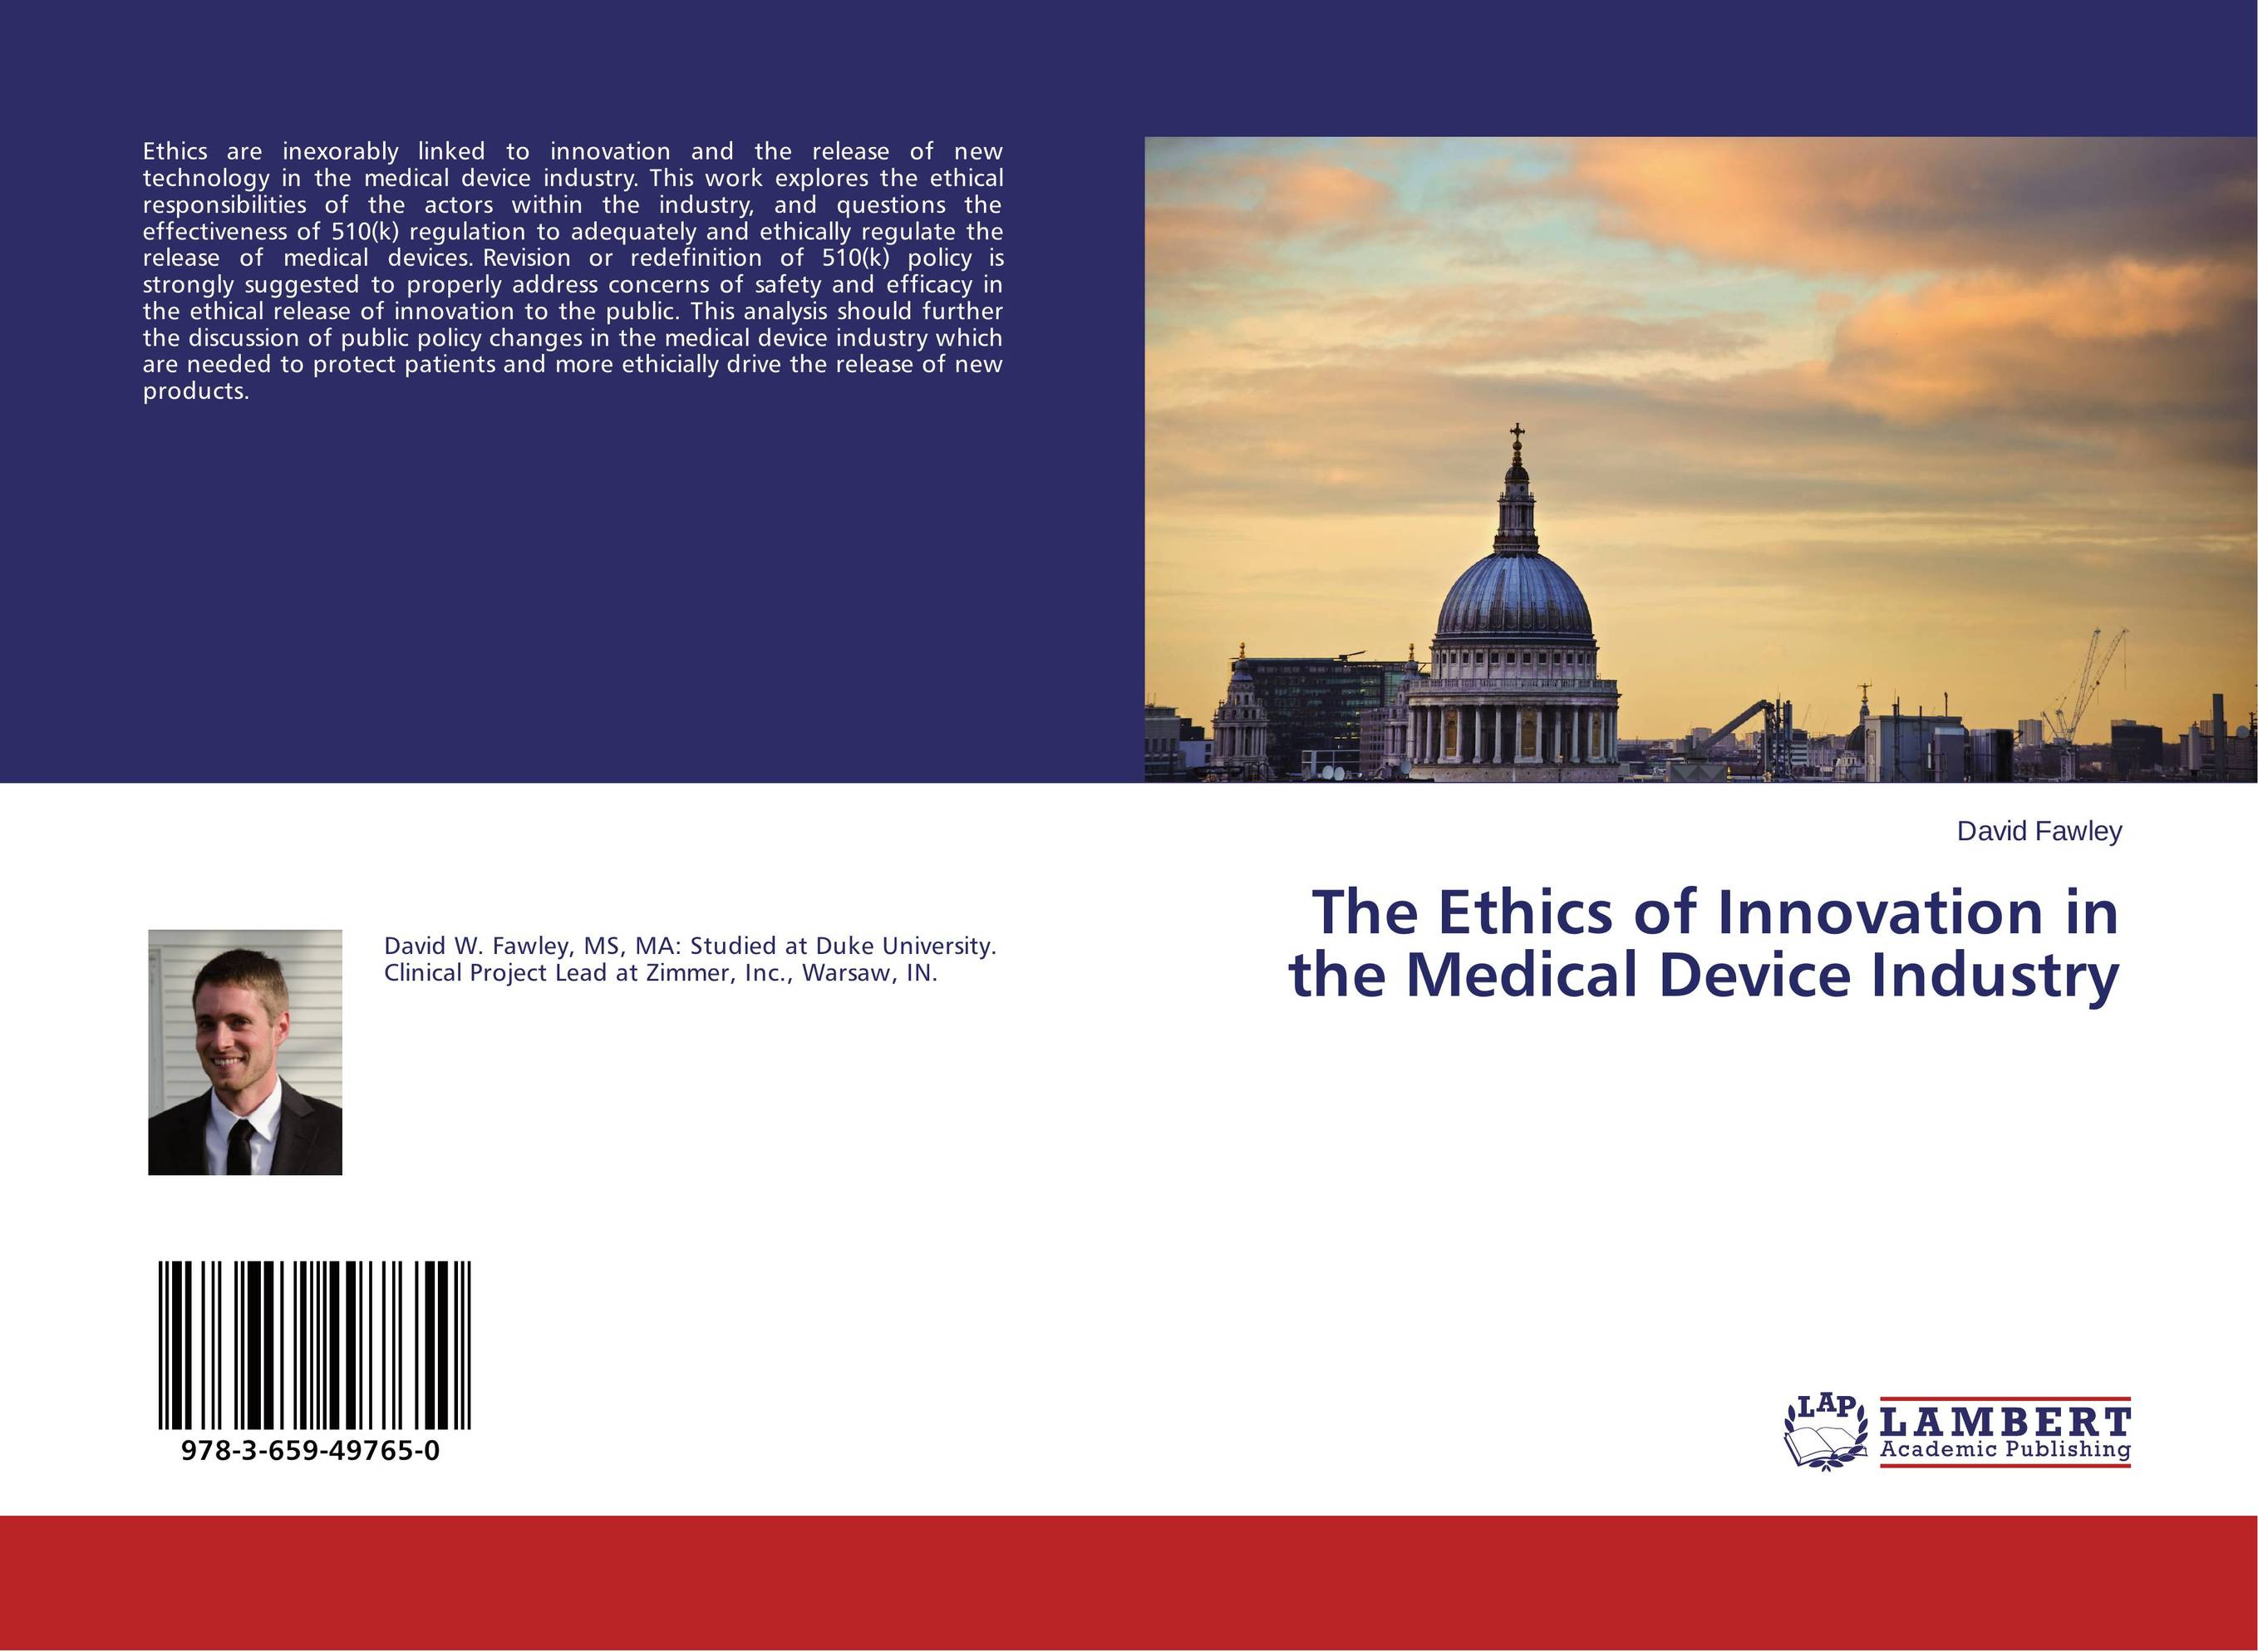 The Ethics of Innovation in the Medical Device Industry